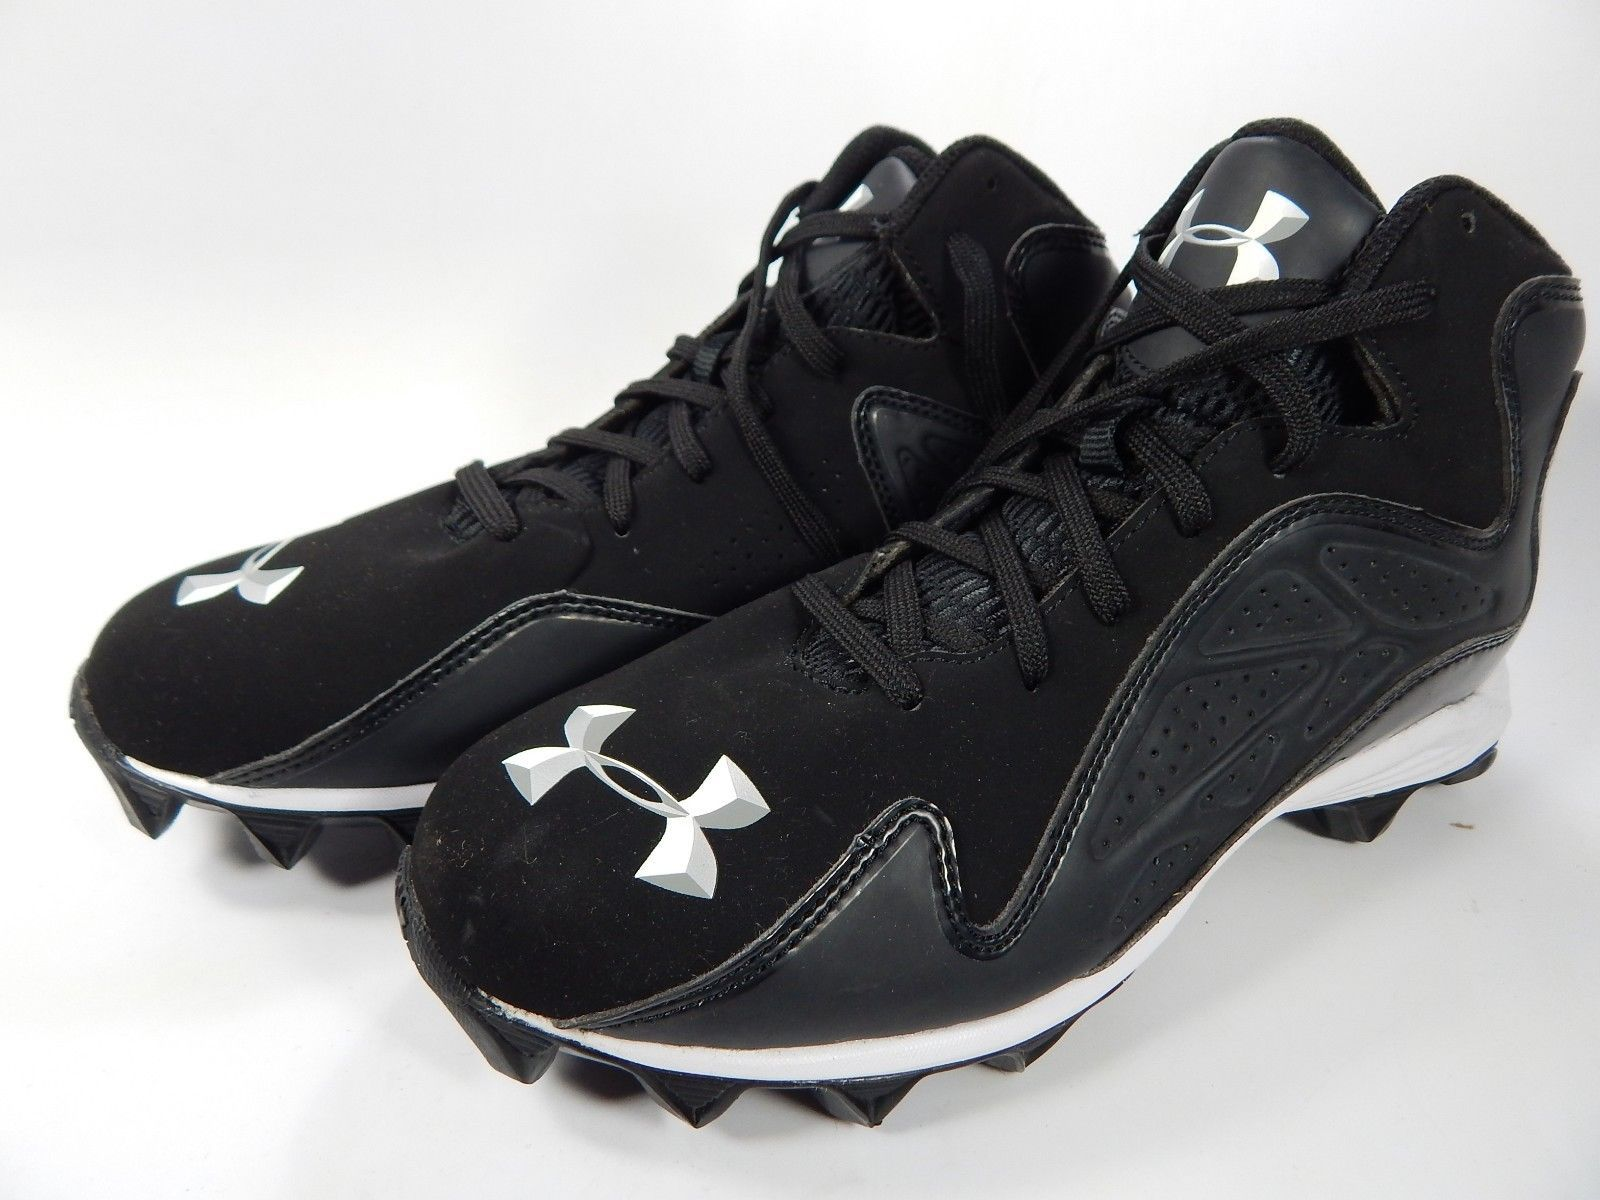 Under Armour Renegade Mid Top Size 4 Y EU 36  Youth Boy's Men's Football Cleat